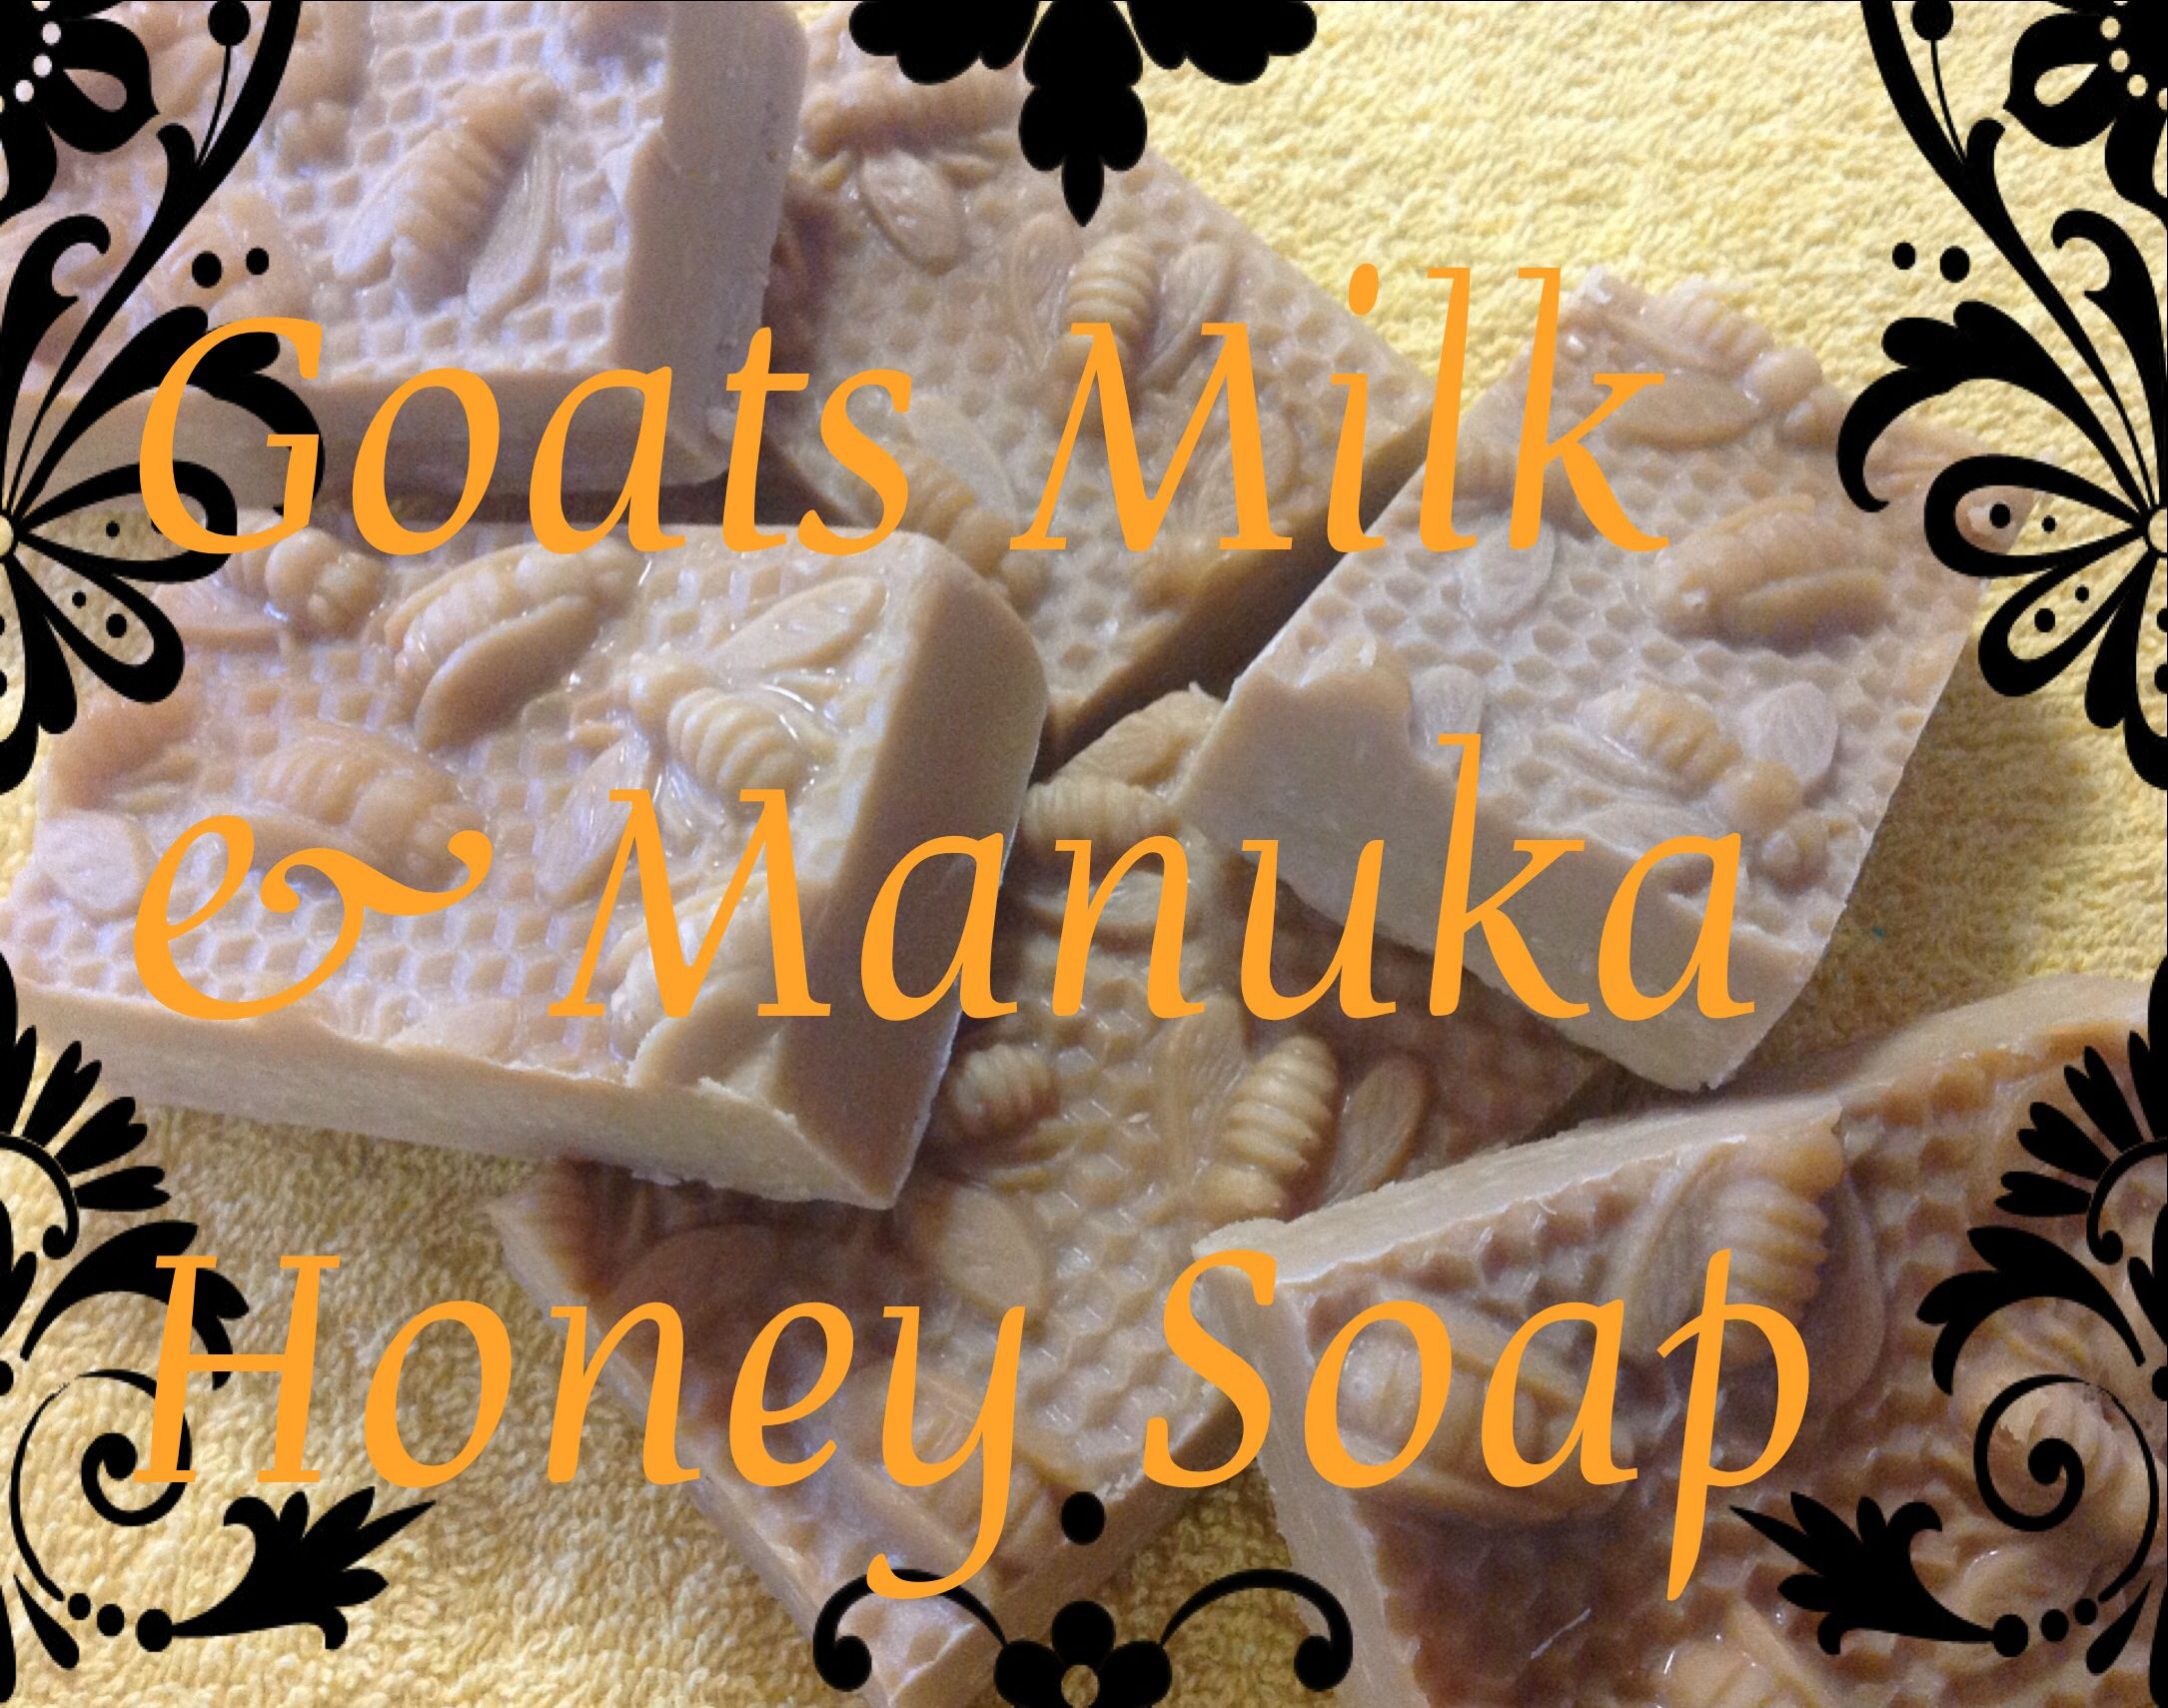 Goats Milk and Manuka Honey Soap fantastic for dry and sensitive skins. This soap is 100percent natural